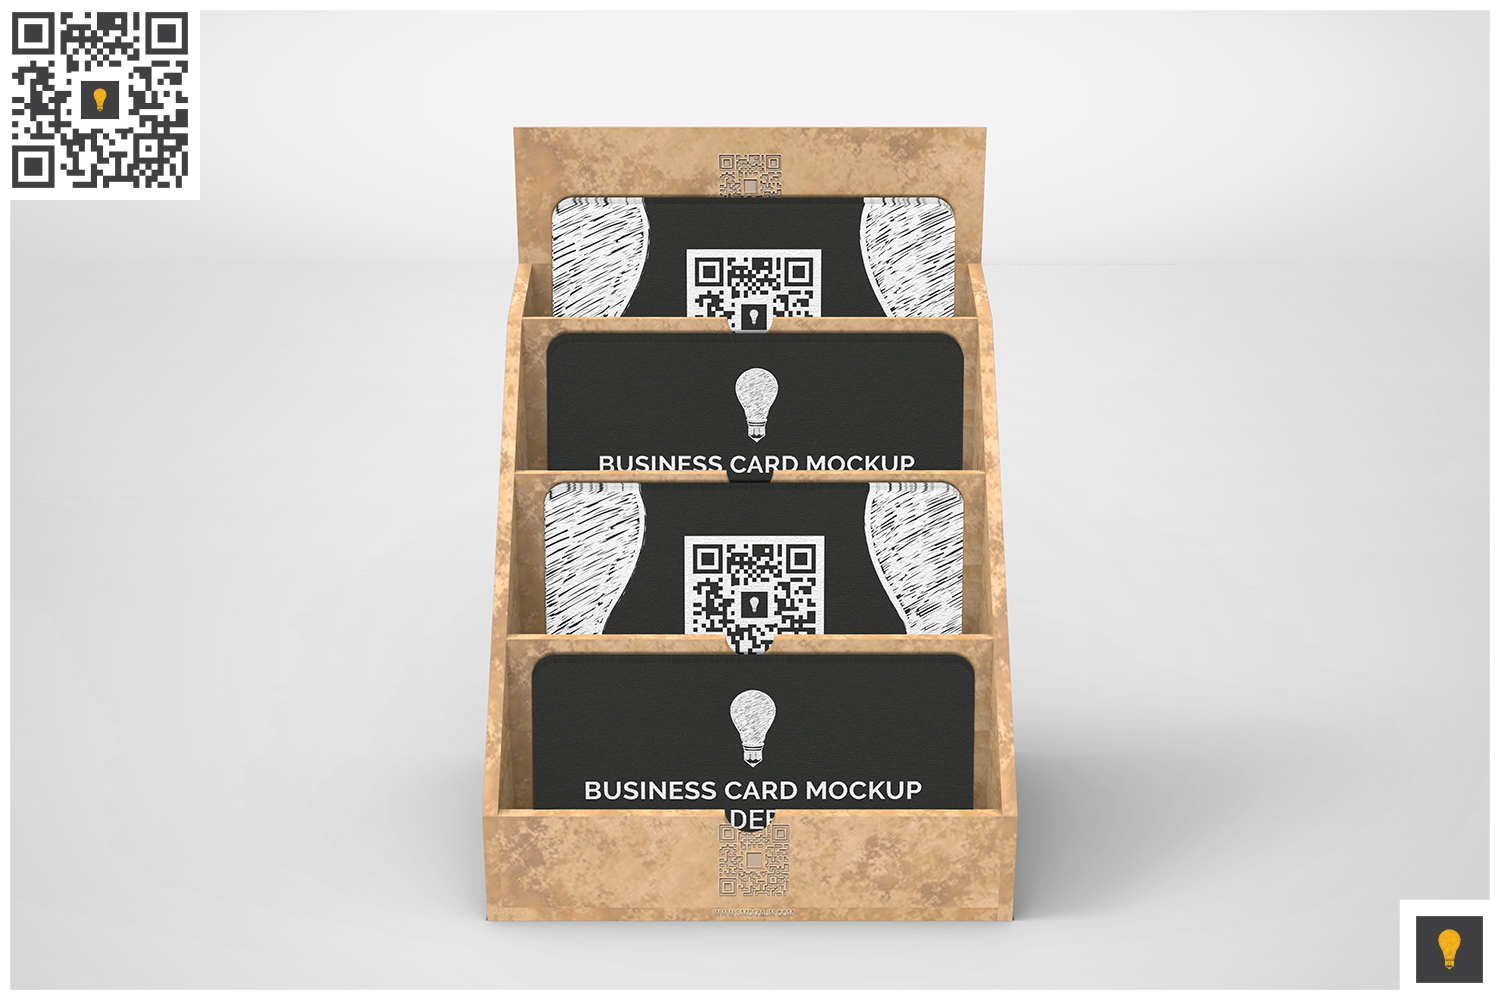 Business Card Holder Mockup example image 6